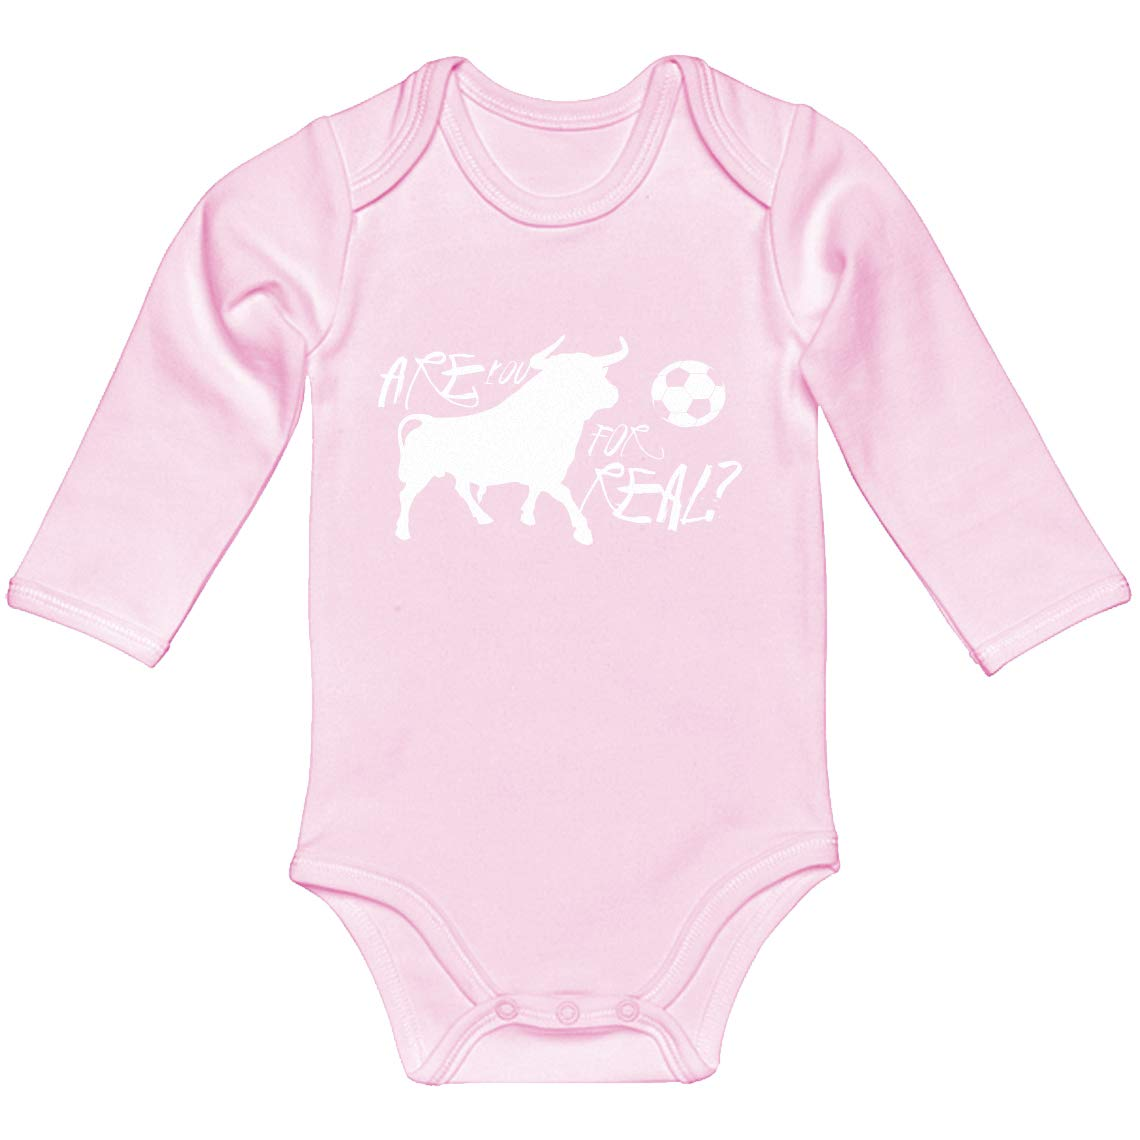 Baby Romper are You for Real 100/% Cotton Long Sleeve Infant Bodysuit